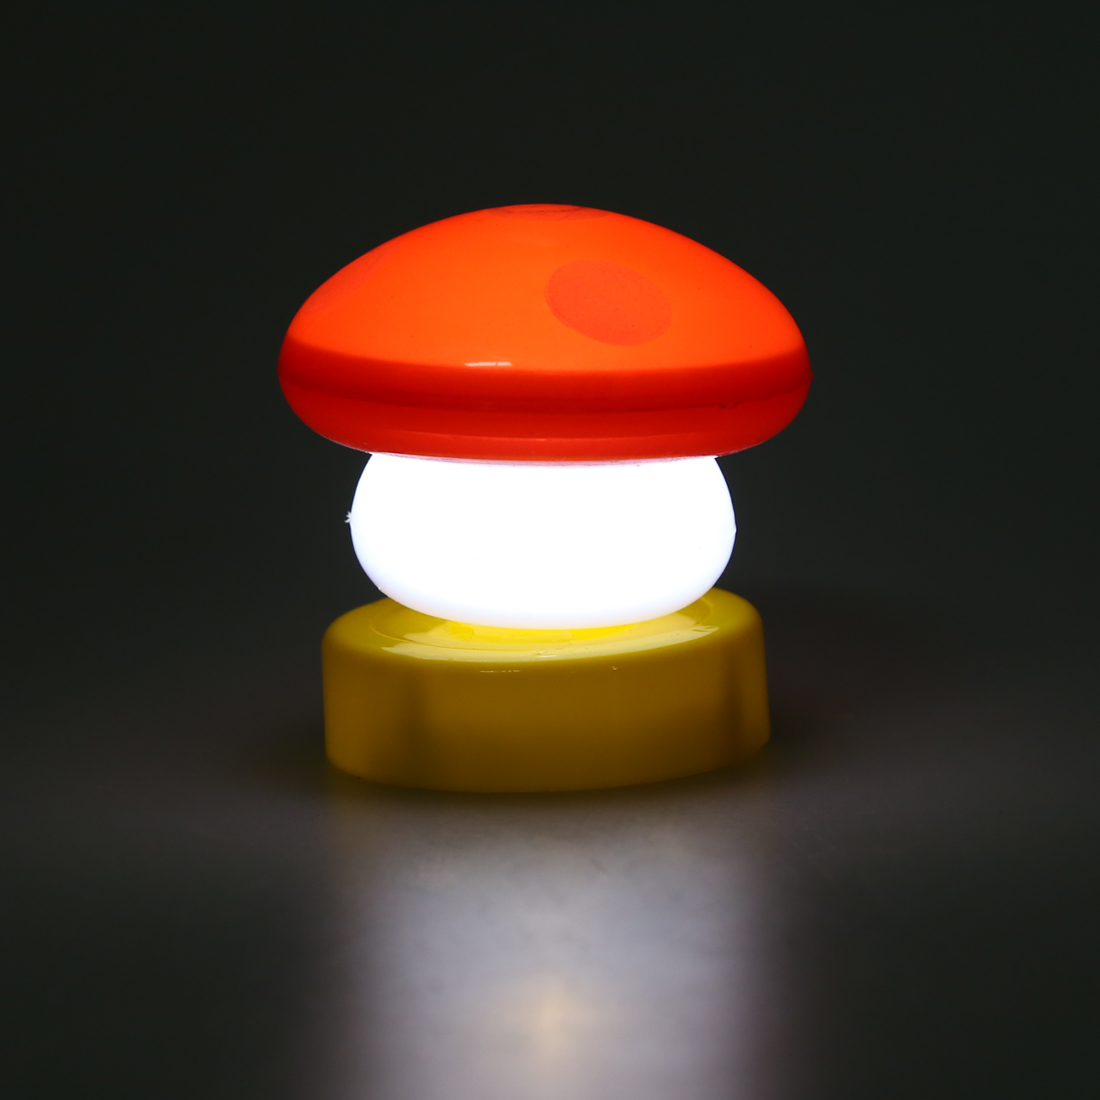 5x champignon lampe tactile led veilleuses enfant luniere nuit light rouge wt ebay. Black Bedroom Furniture Sets. Home Design Ideas